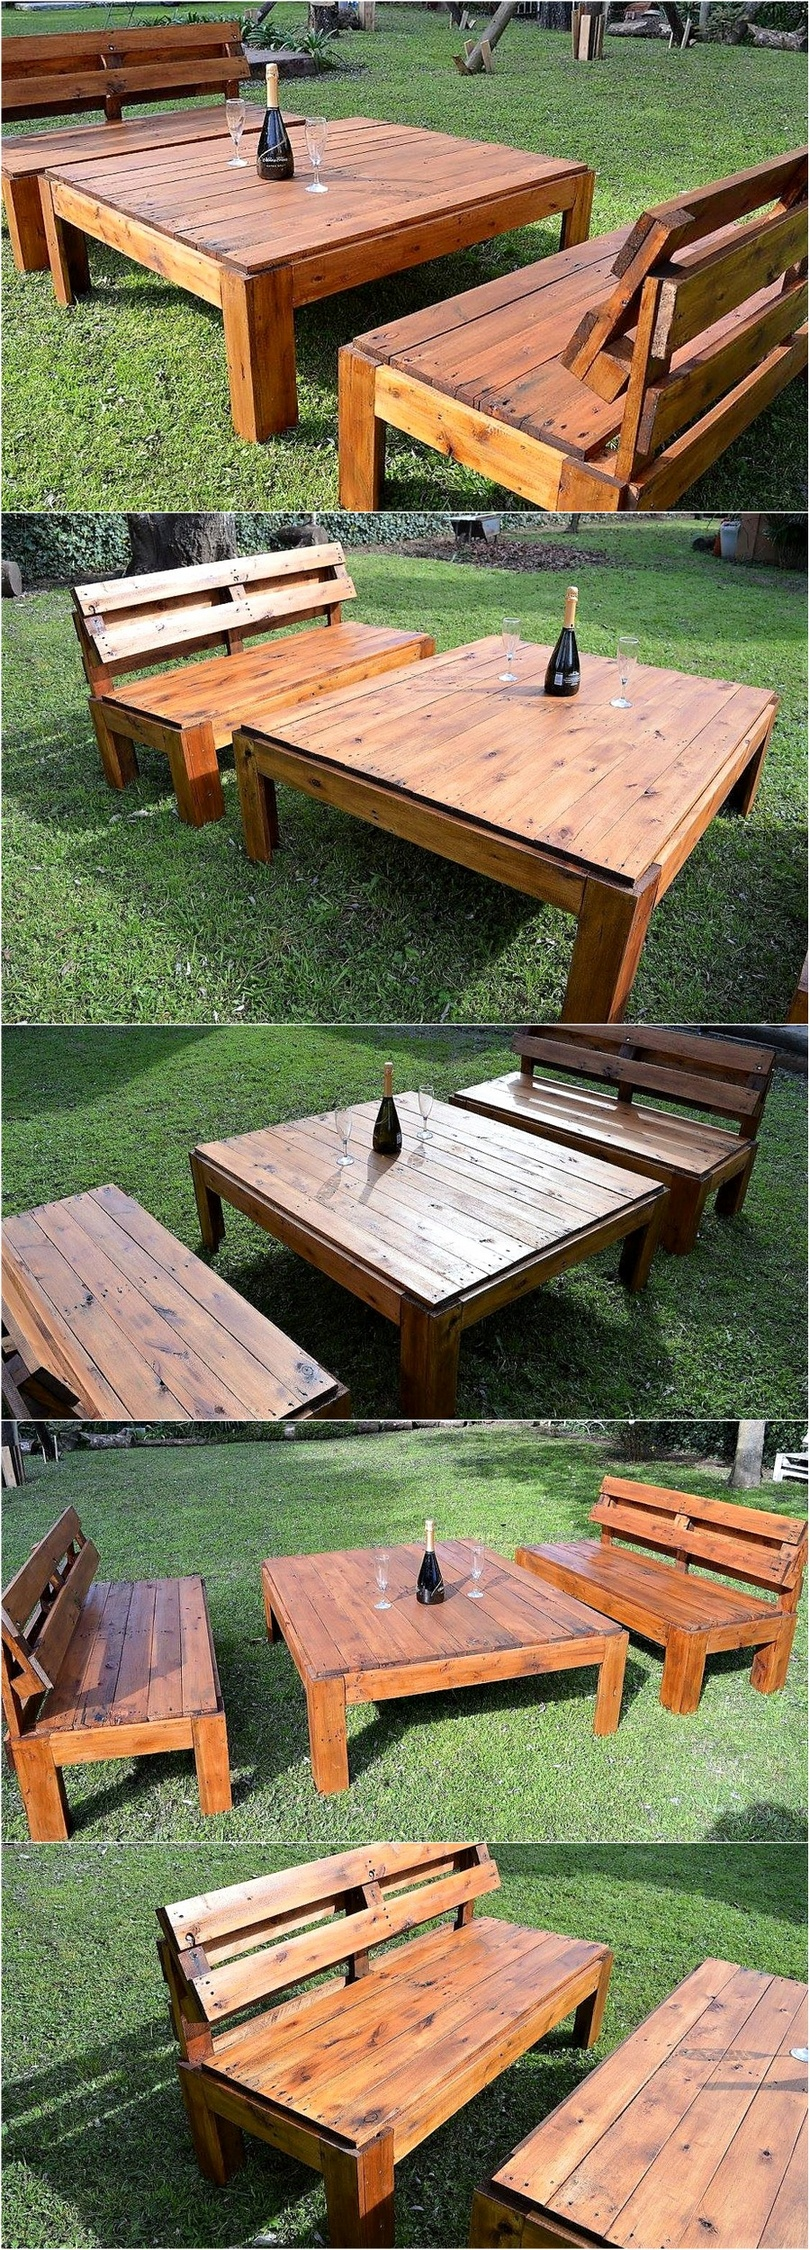 pallets-garden-lounge-furniture